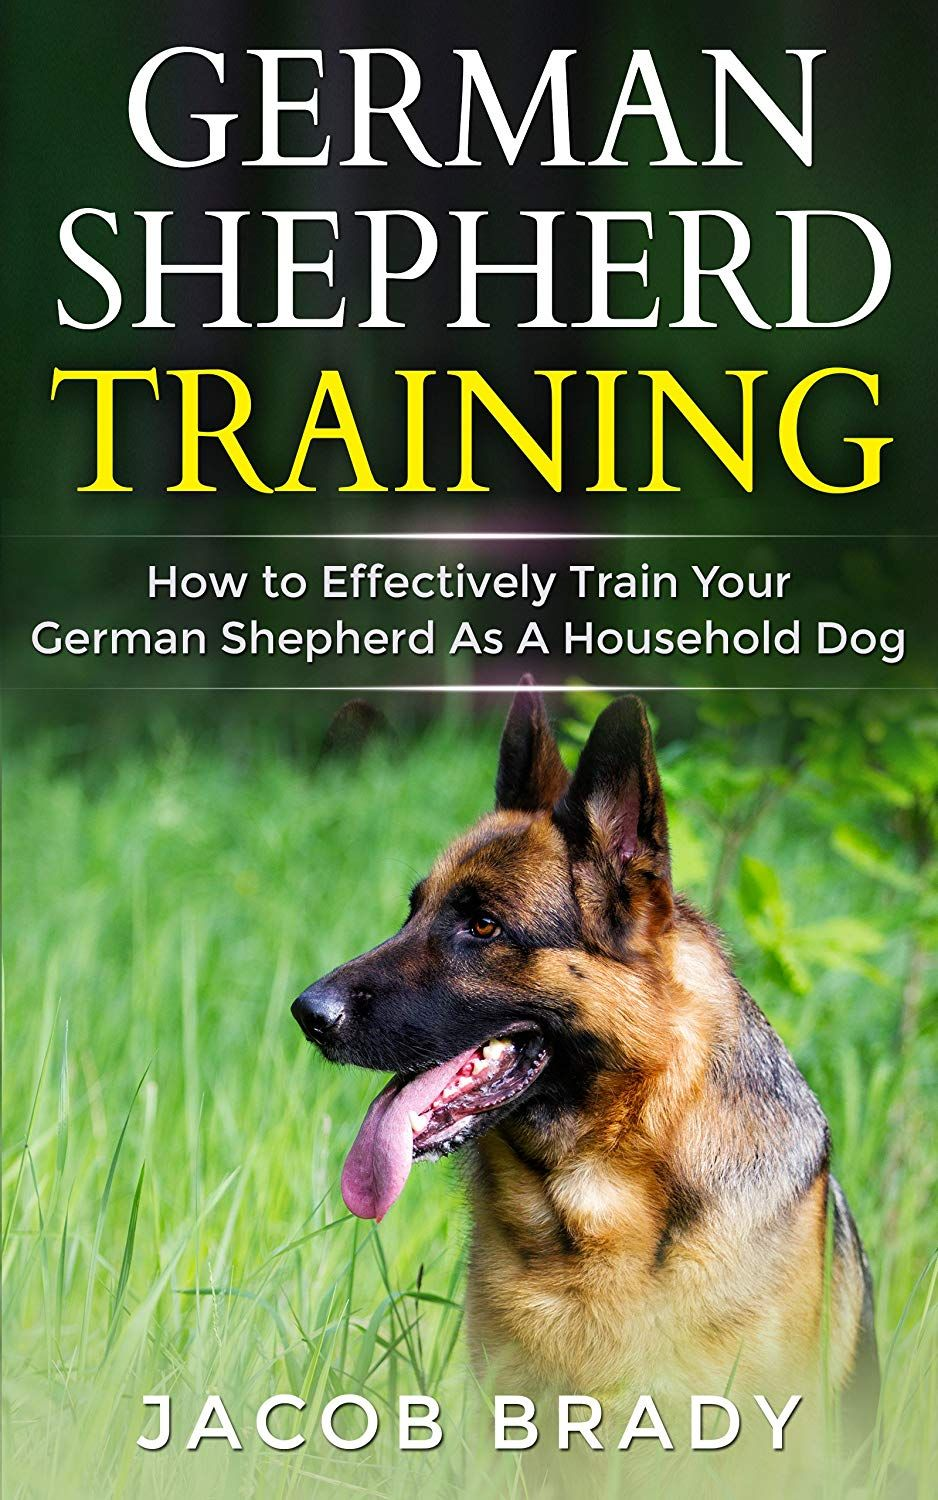 German Shepherd Training How To Effectively Train Your German